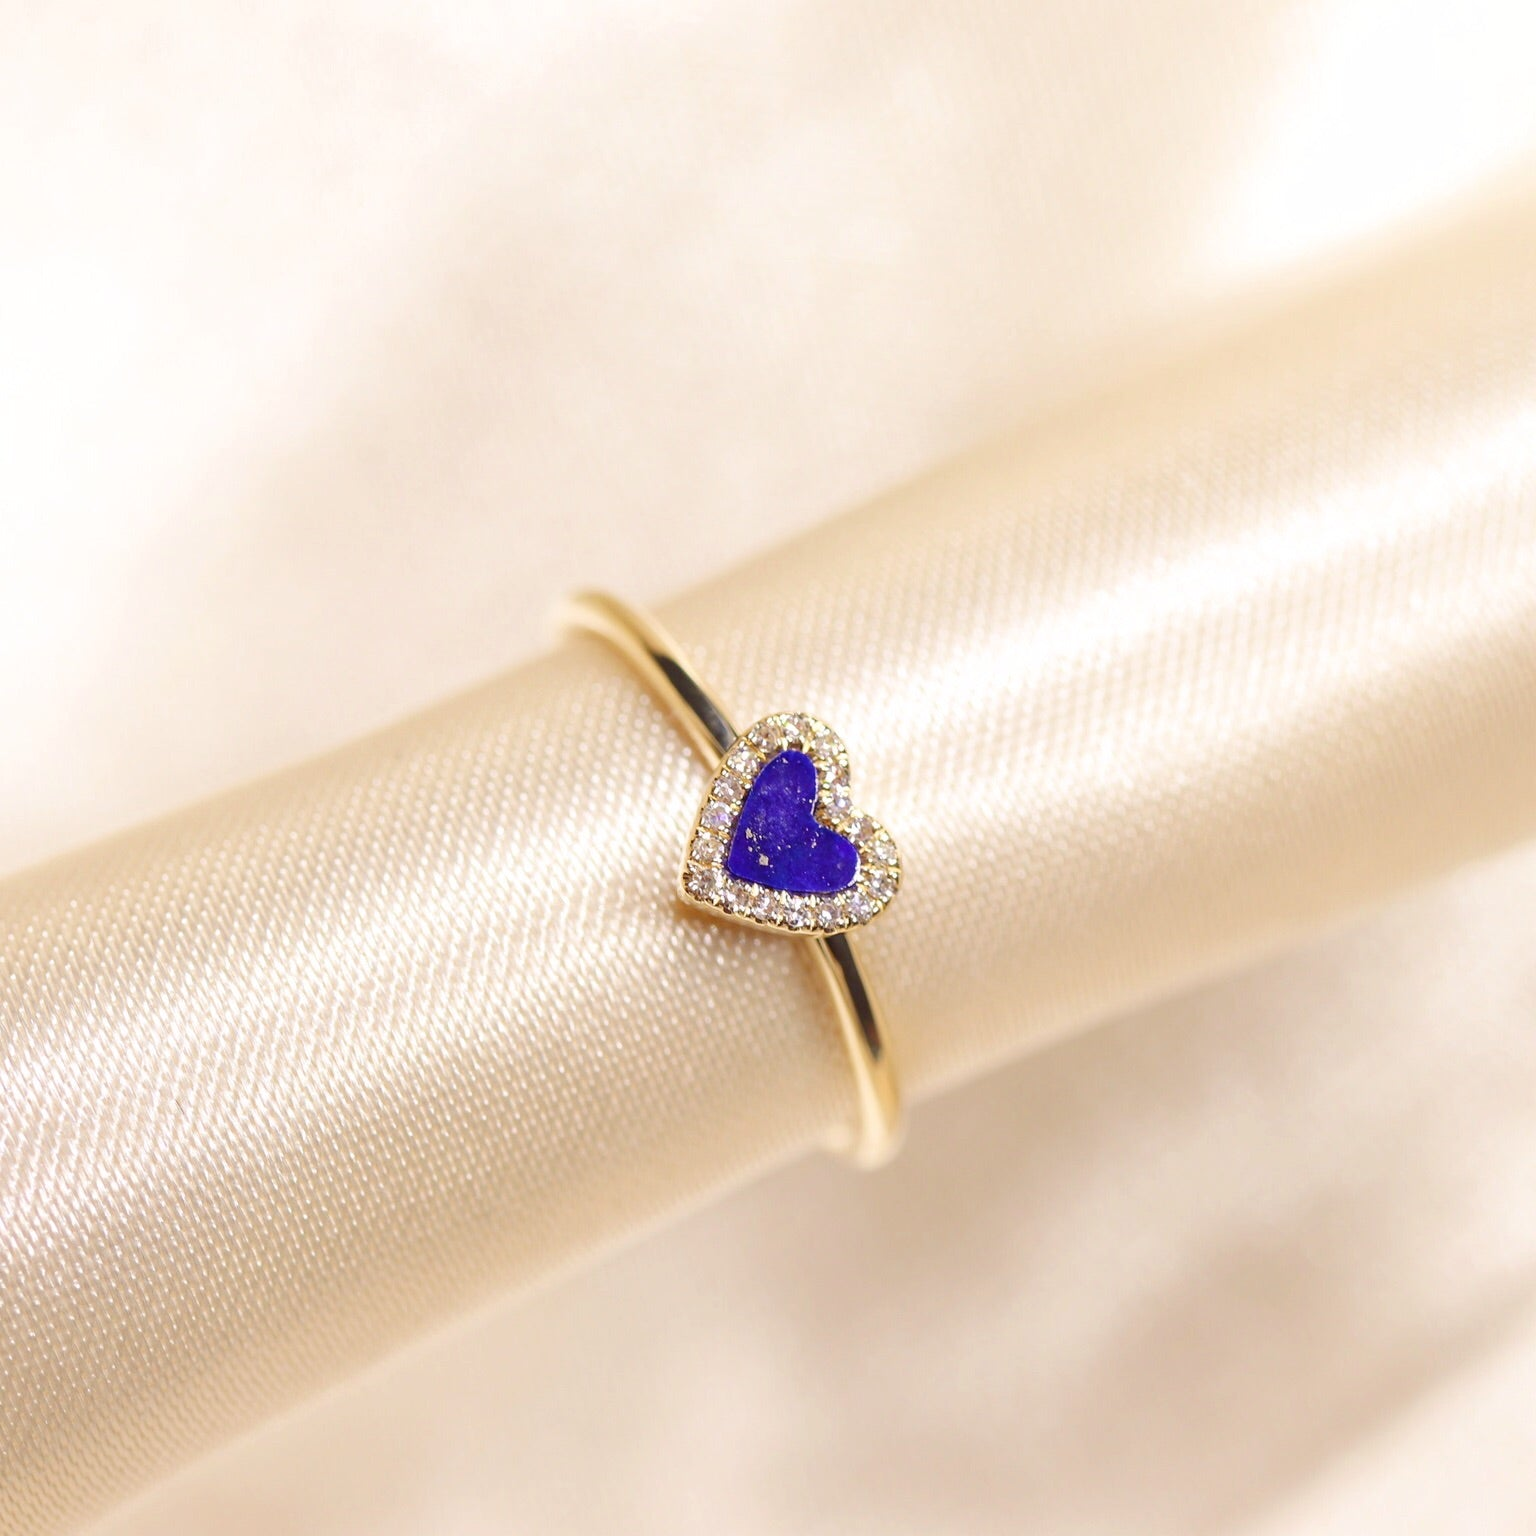 14K Yellow Gold Heart Shape Lapis Lazuli  Diamond Ring - Ice Motif